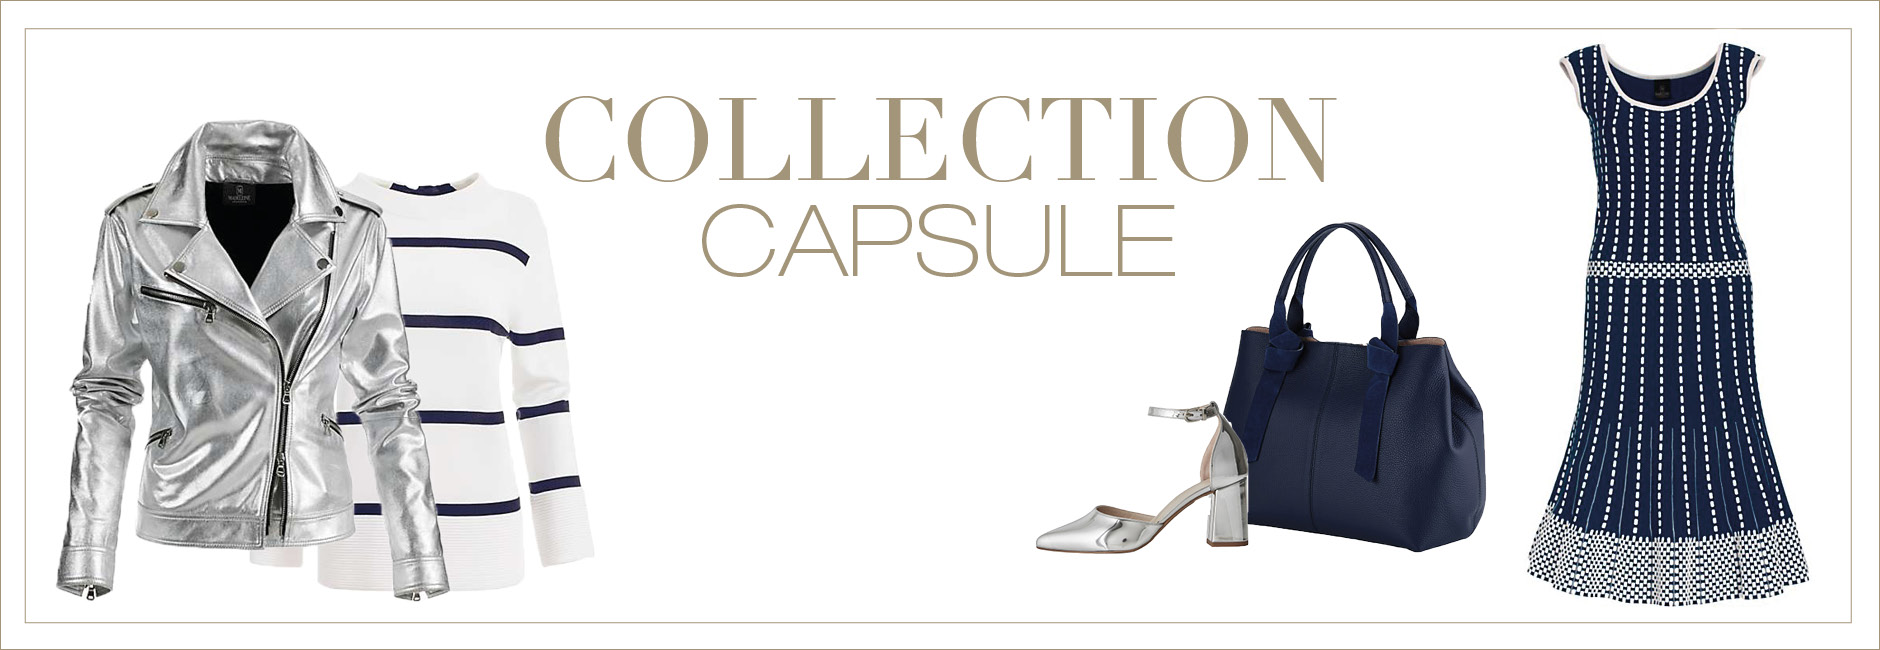 Collection capsule